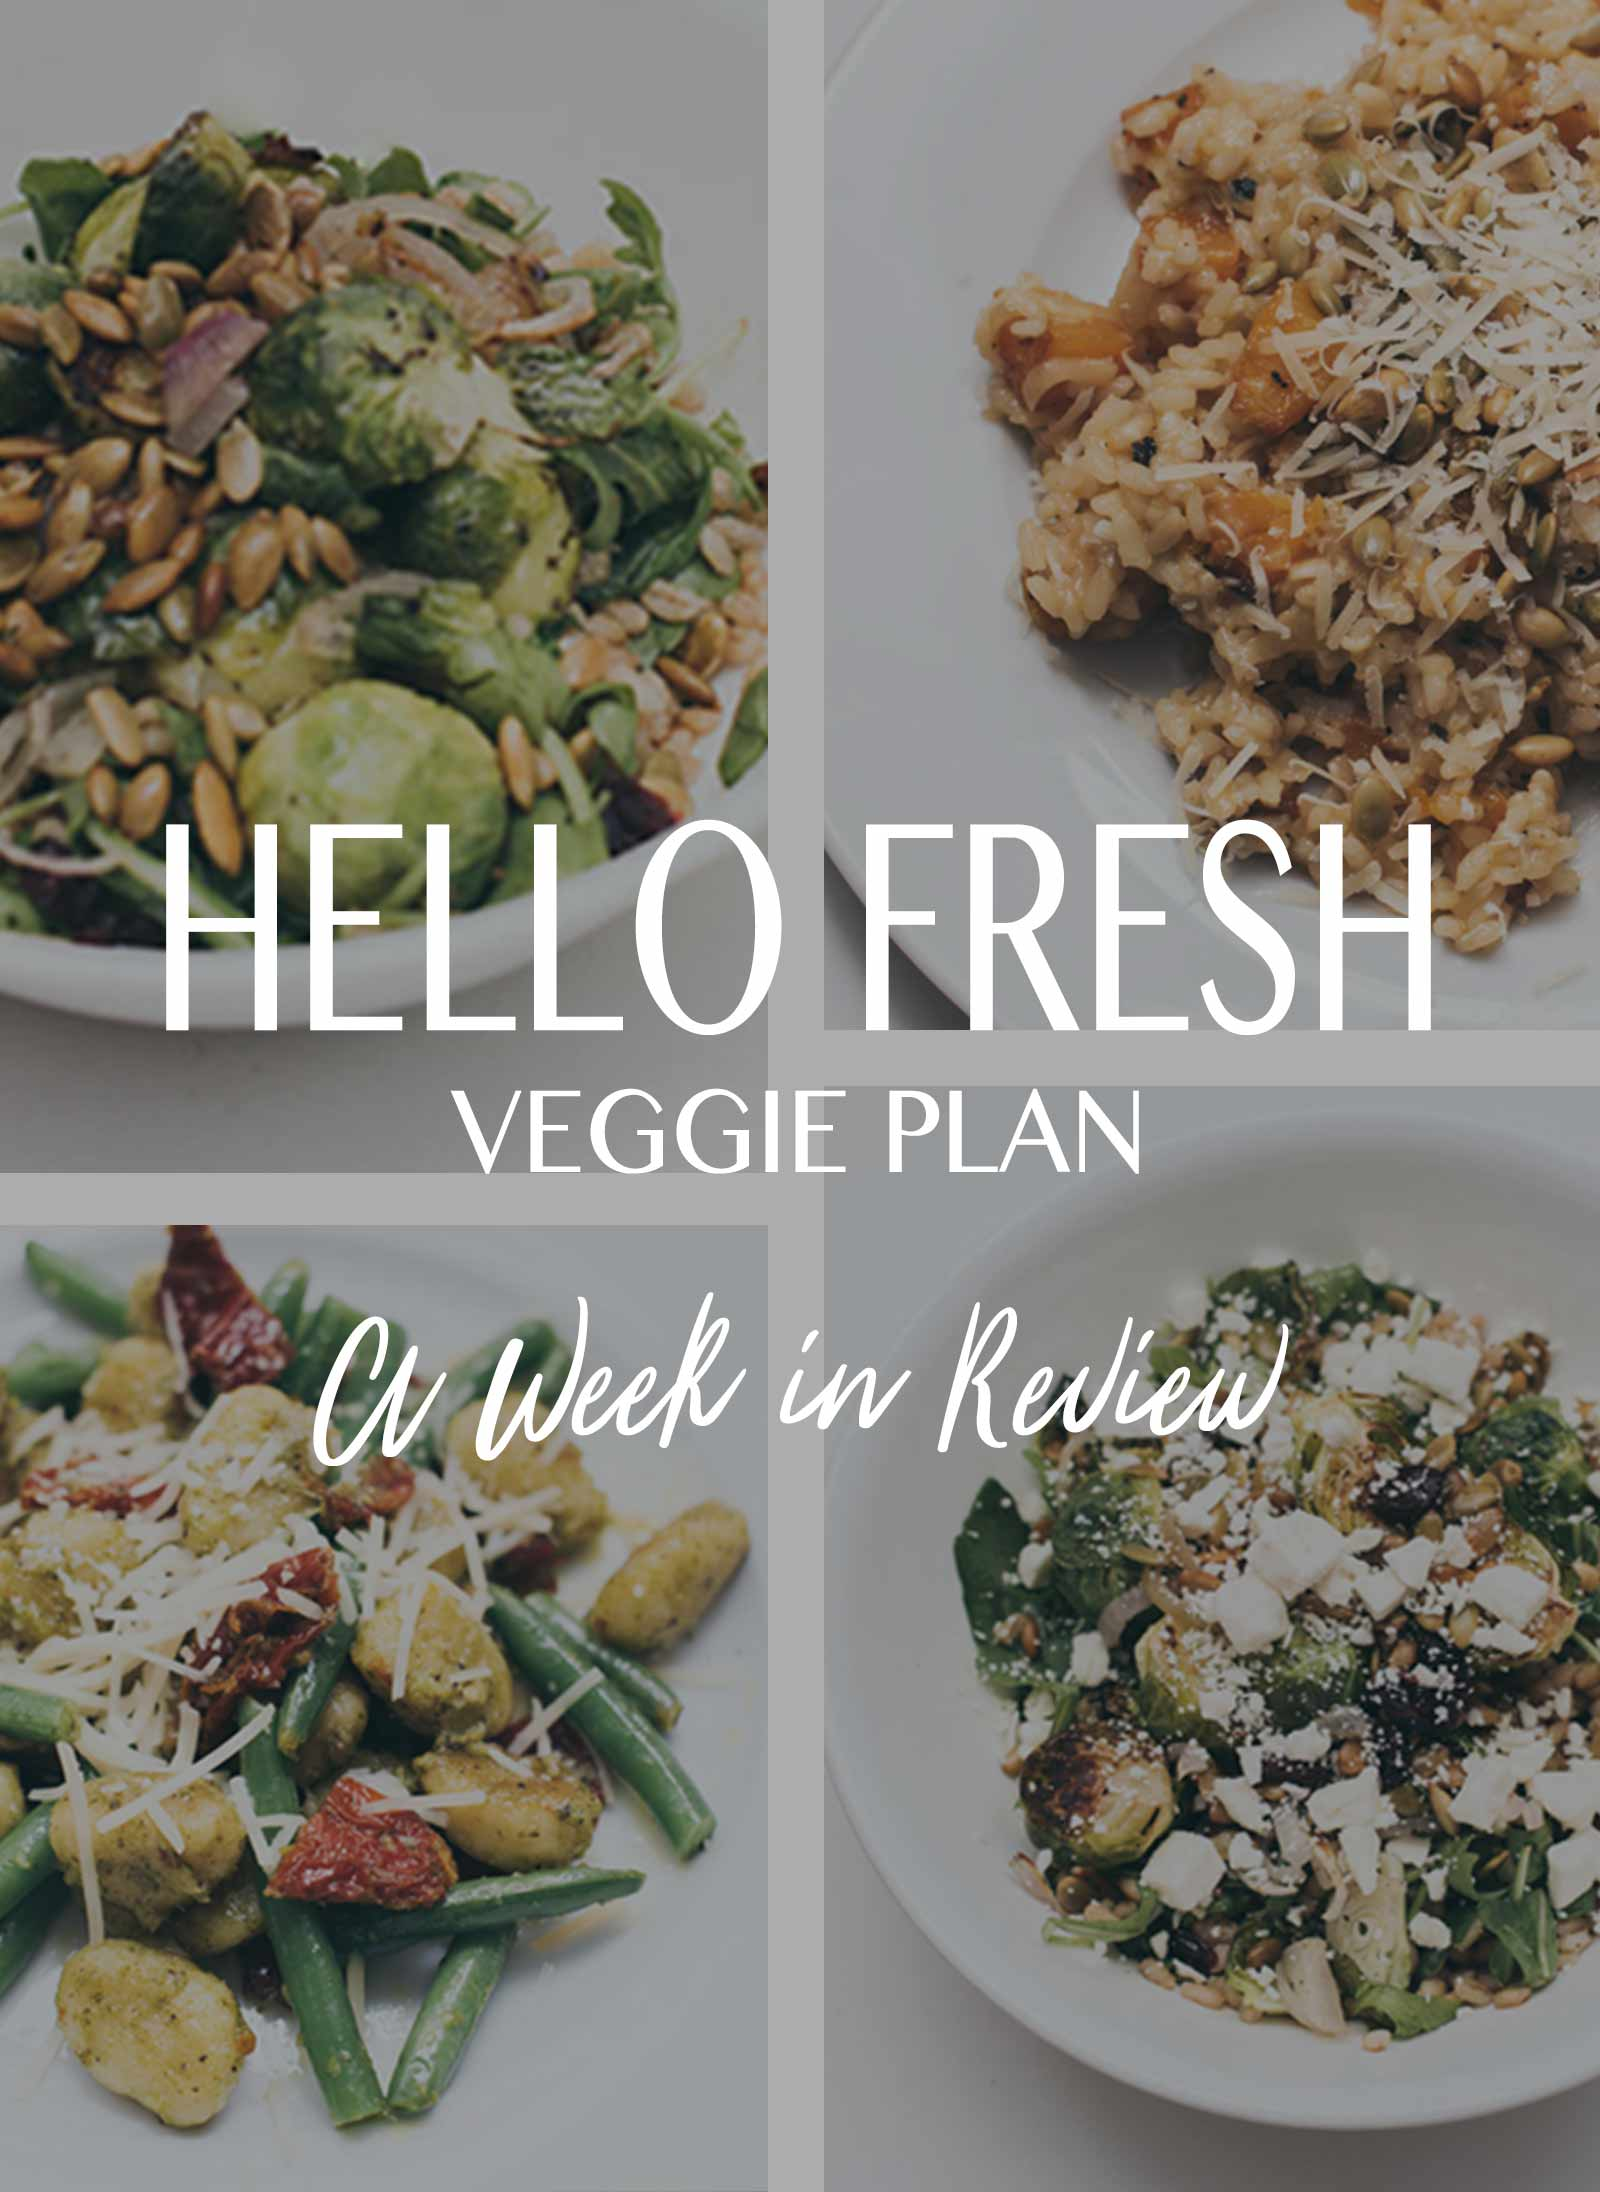 Meal Kit Delivery Service Full Price Hellofresh  Store